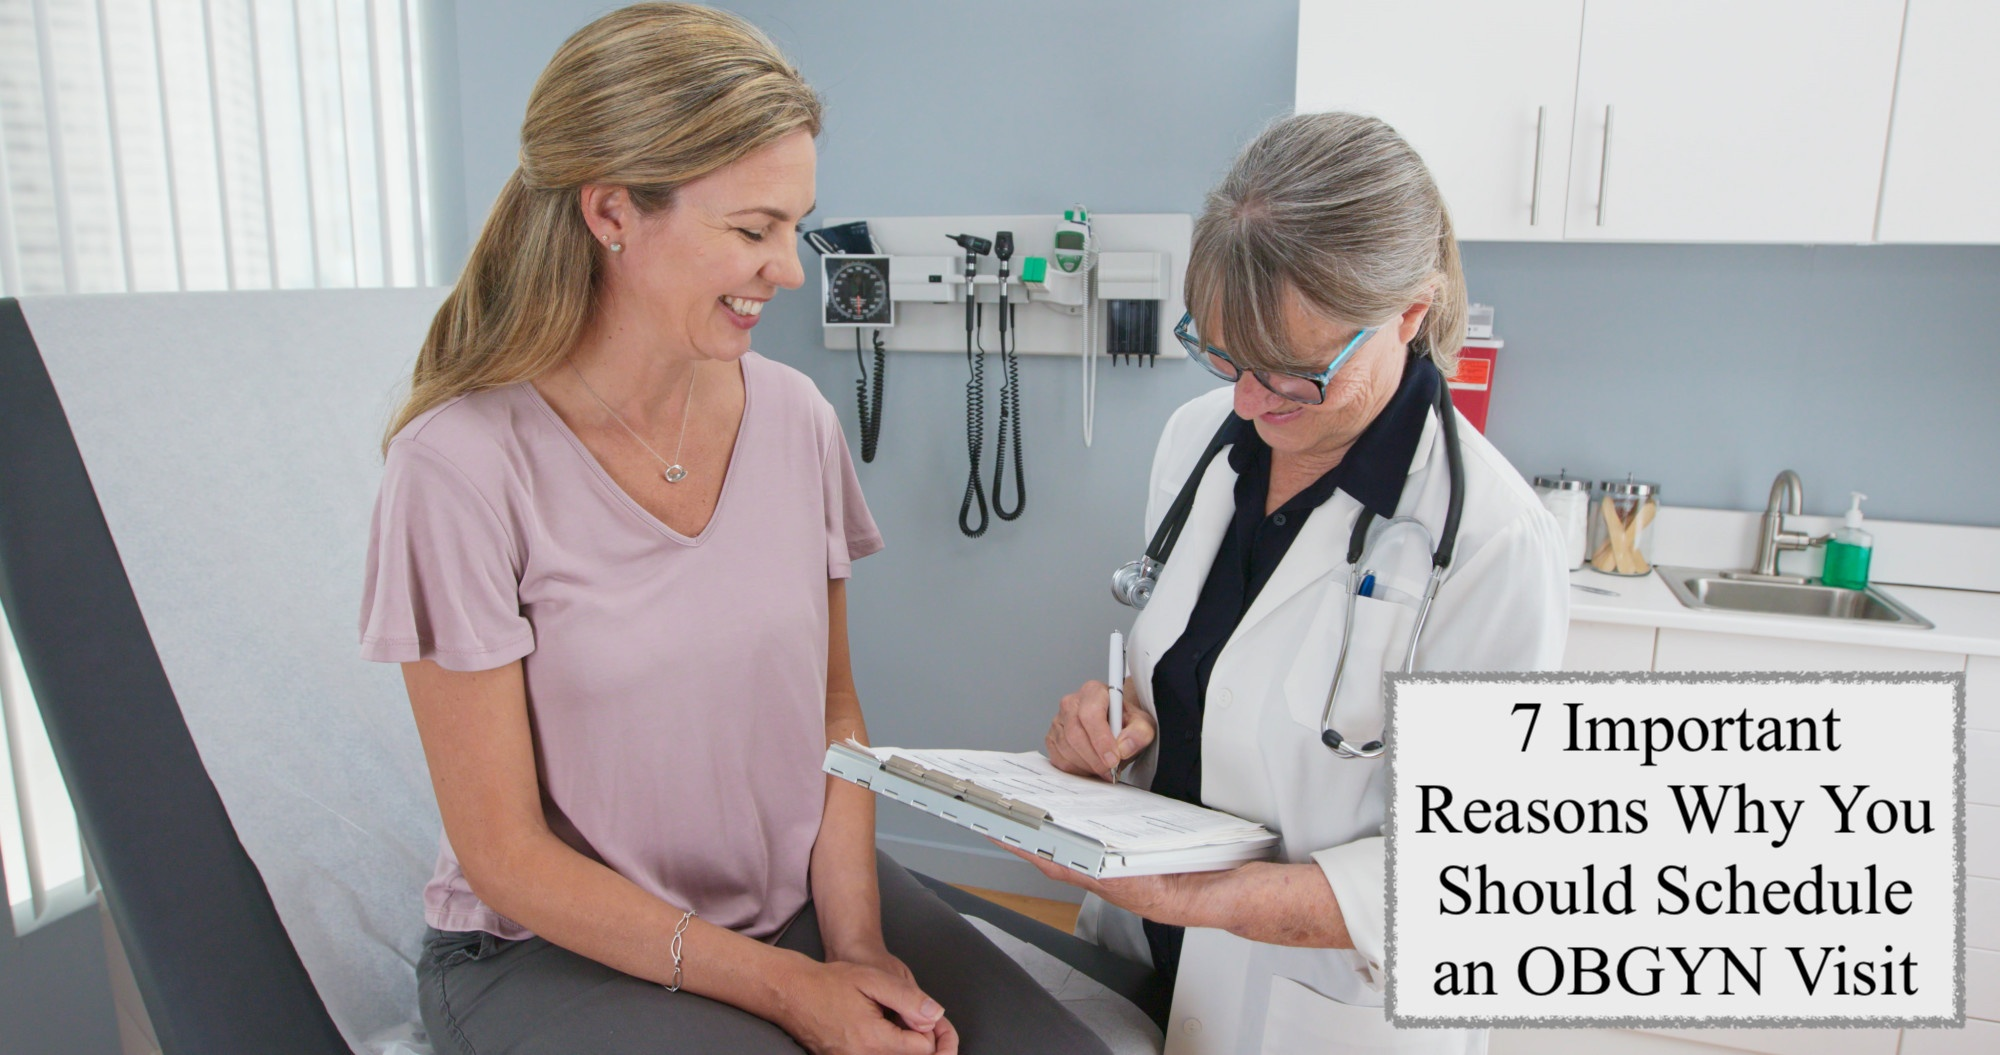 7 Important Reasons Why You Should Schedule an OBGYN Visit